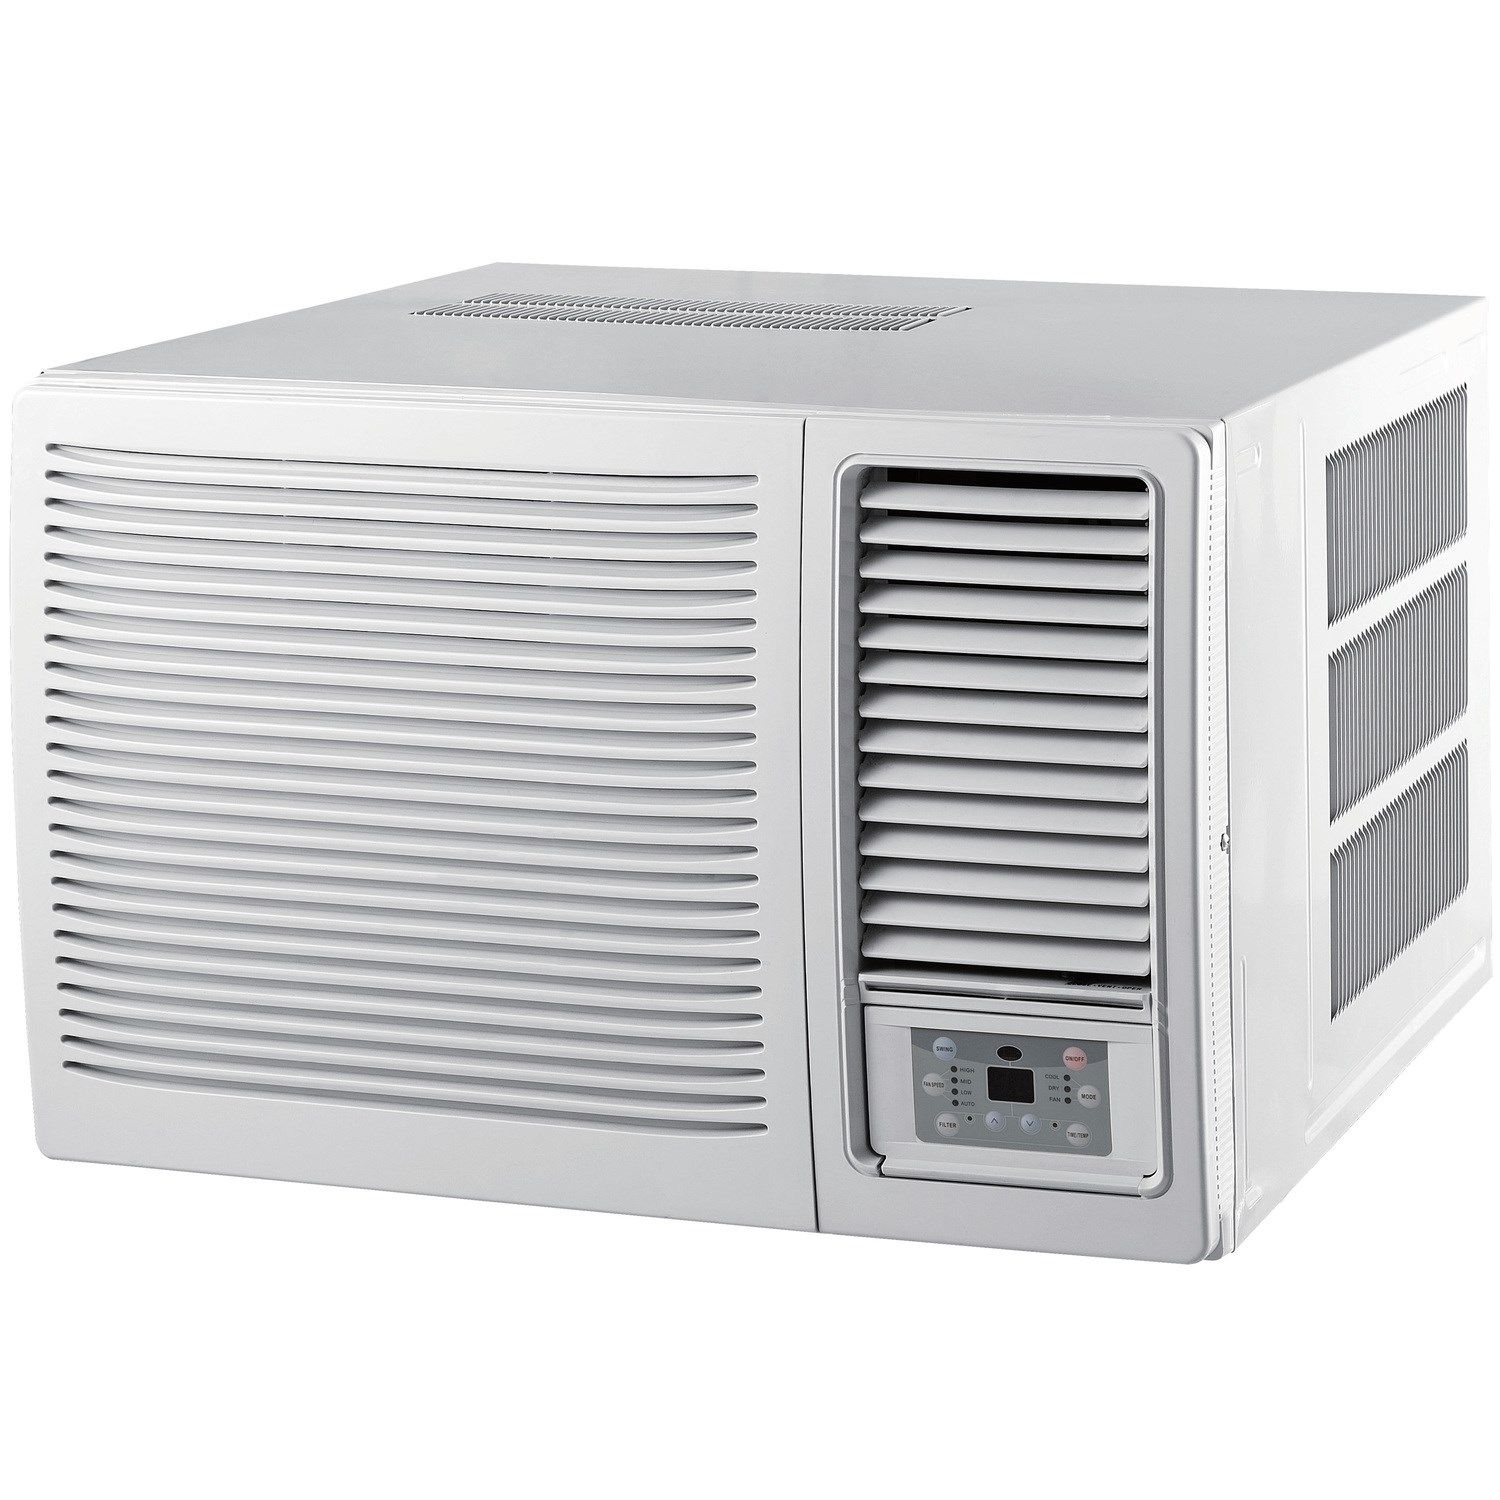 Why People Are Preferring Window Air Conditioner Window Air Conditioner Air Conditioner Uk Air Conditioner Prices